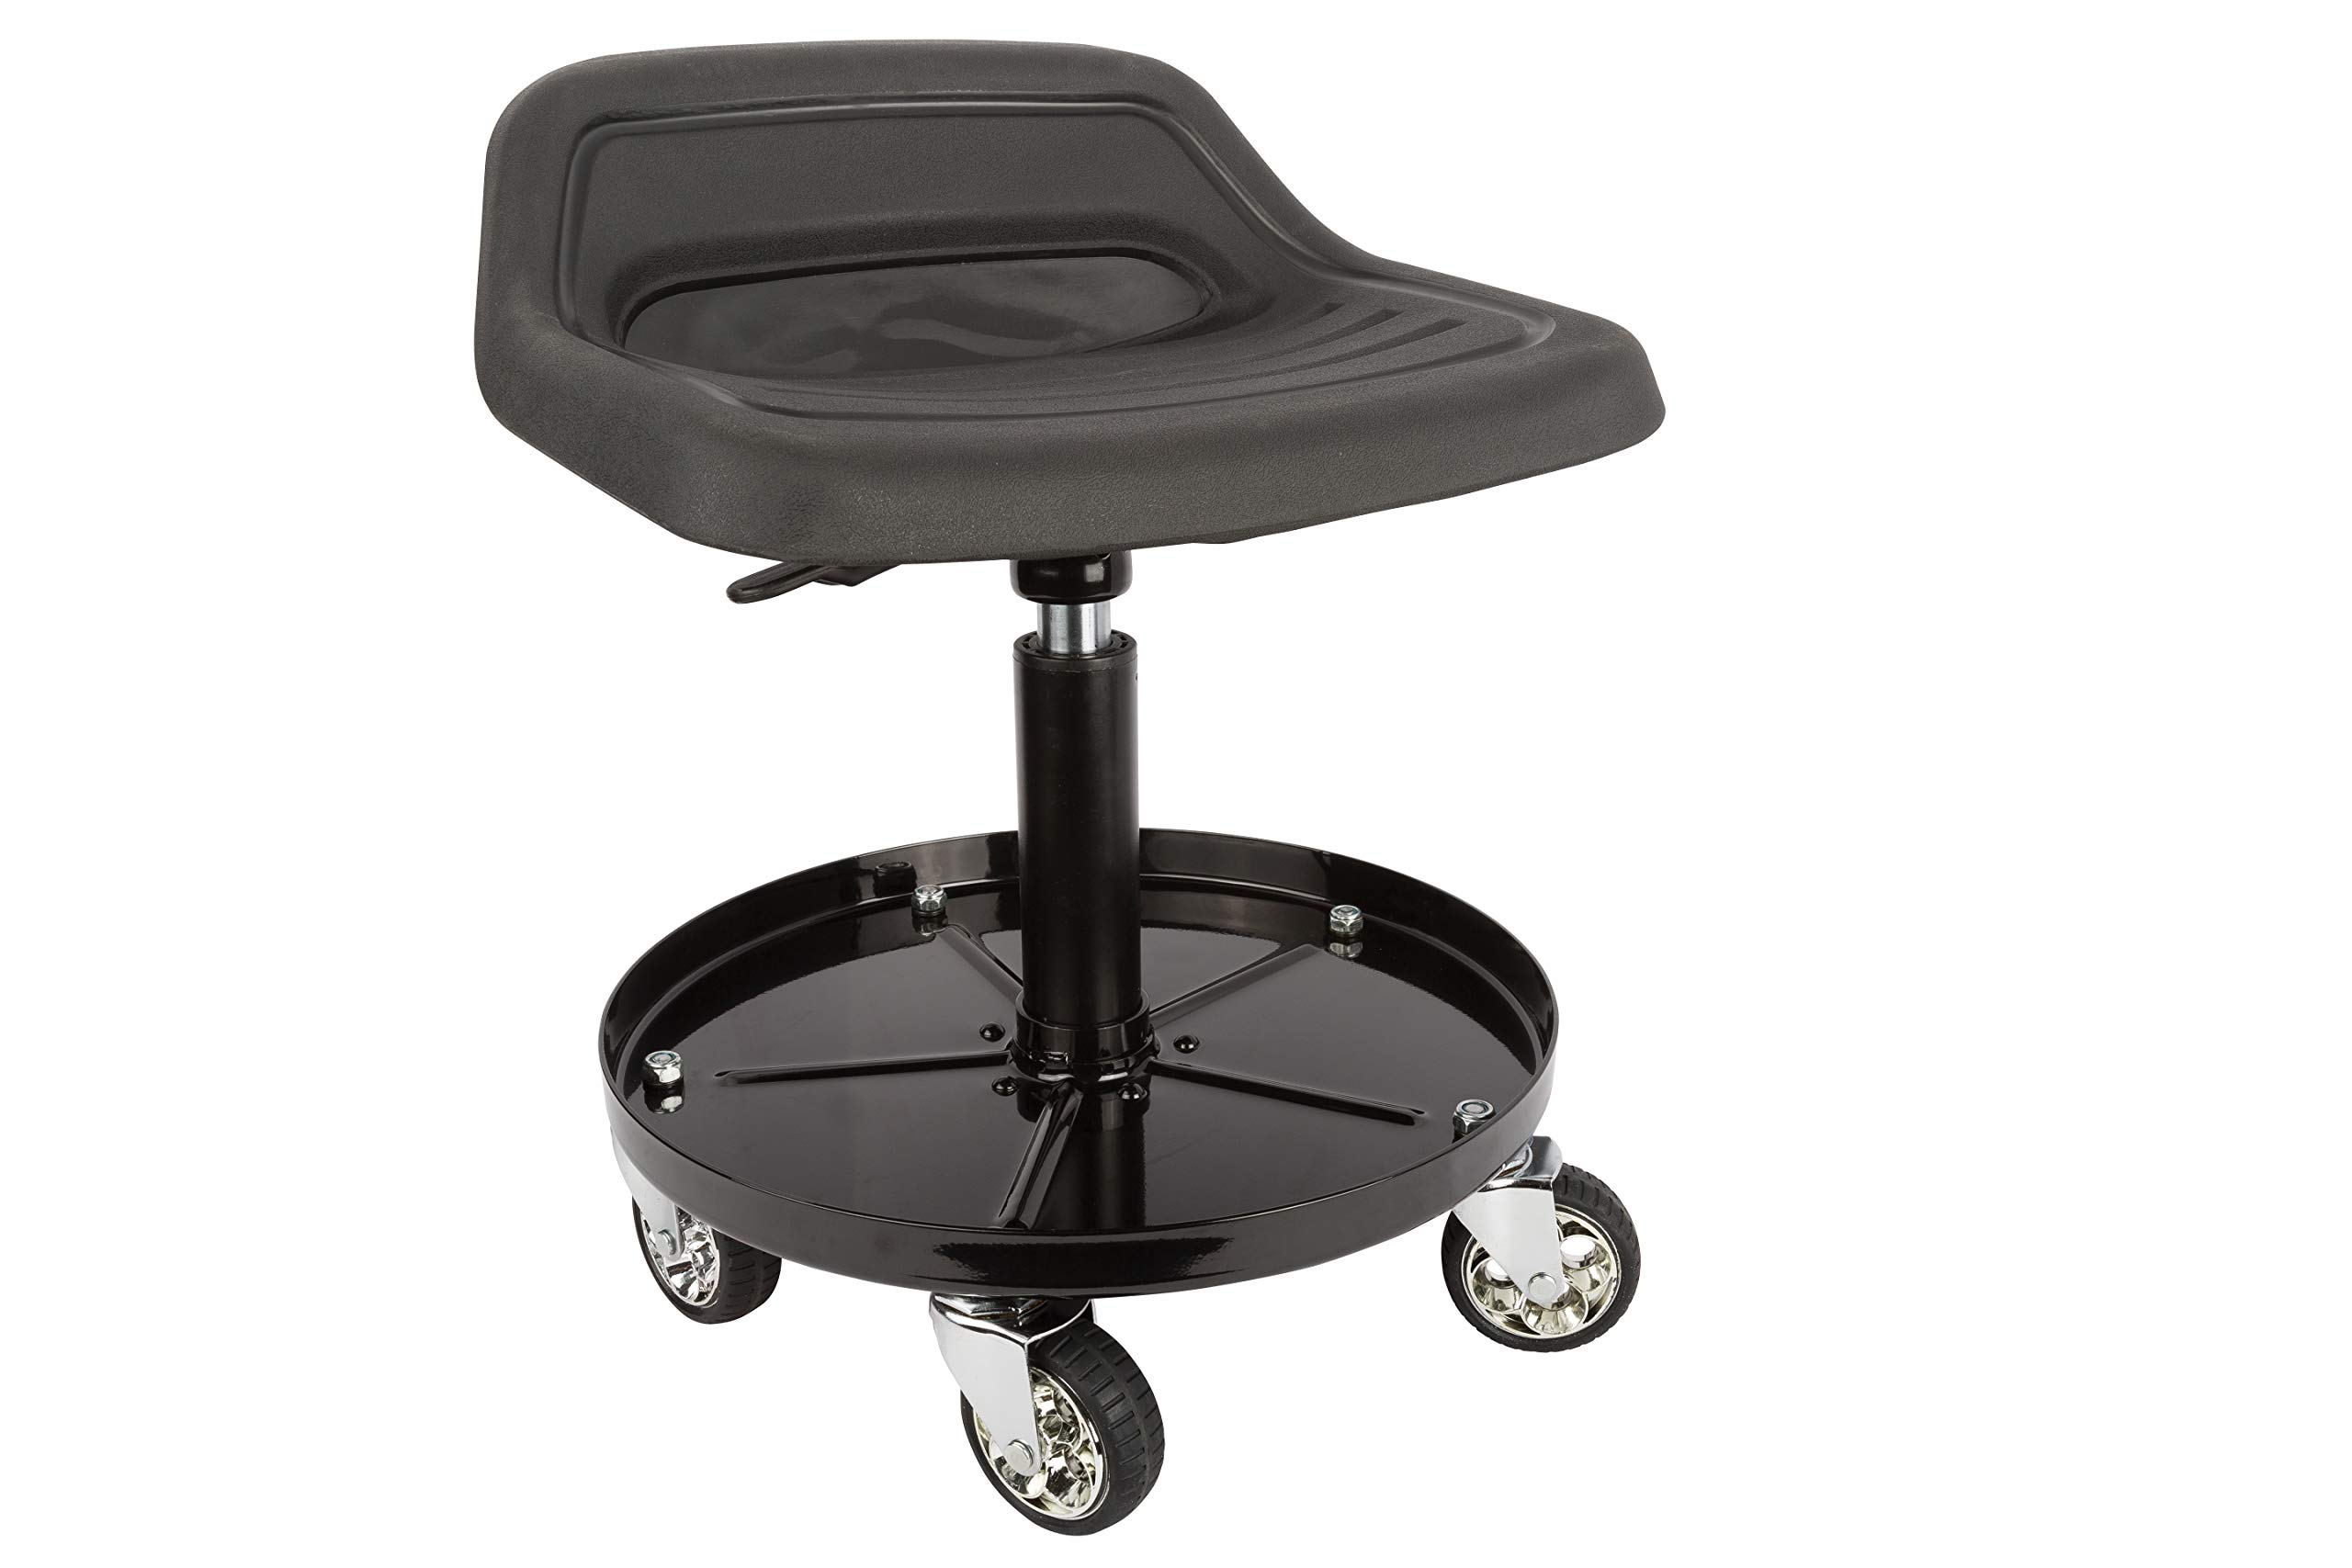 Sunex 8514 300-Pound Capacity Telescoping Tractor Seat with Parts Tray and 3.5-Inch Heavy Duty Casters by Sunex Tools